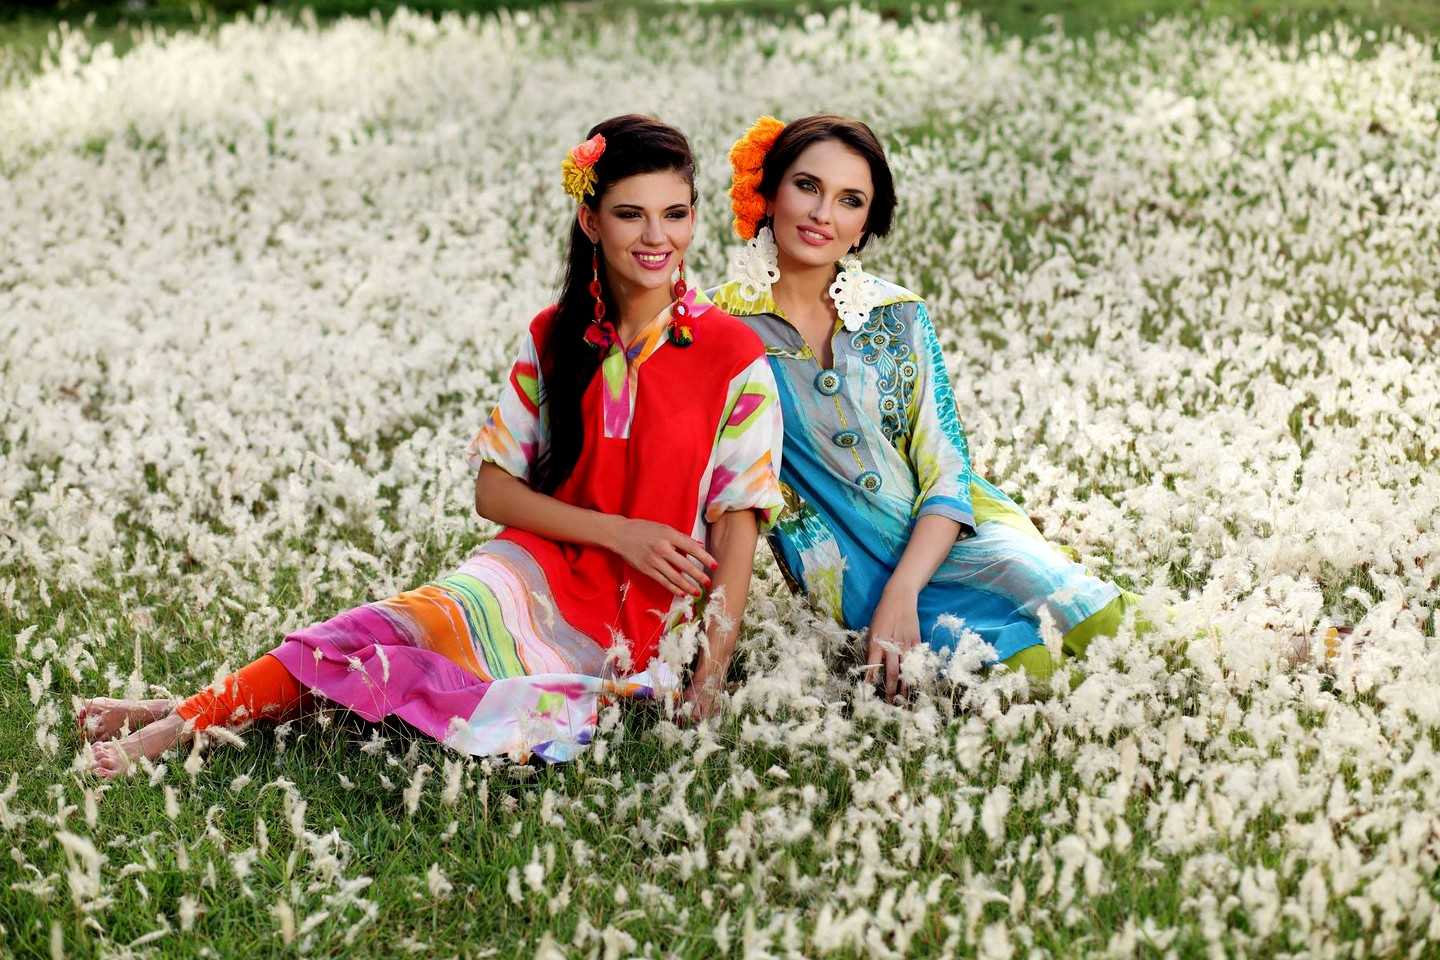 www.tvn.hu imagesize:1440x960 lsm 2 Pareesa Summer Collection 2013-14 | New Collection of Pareesa Lawn by ChenOne